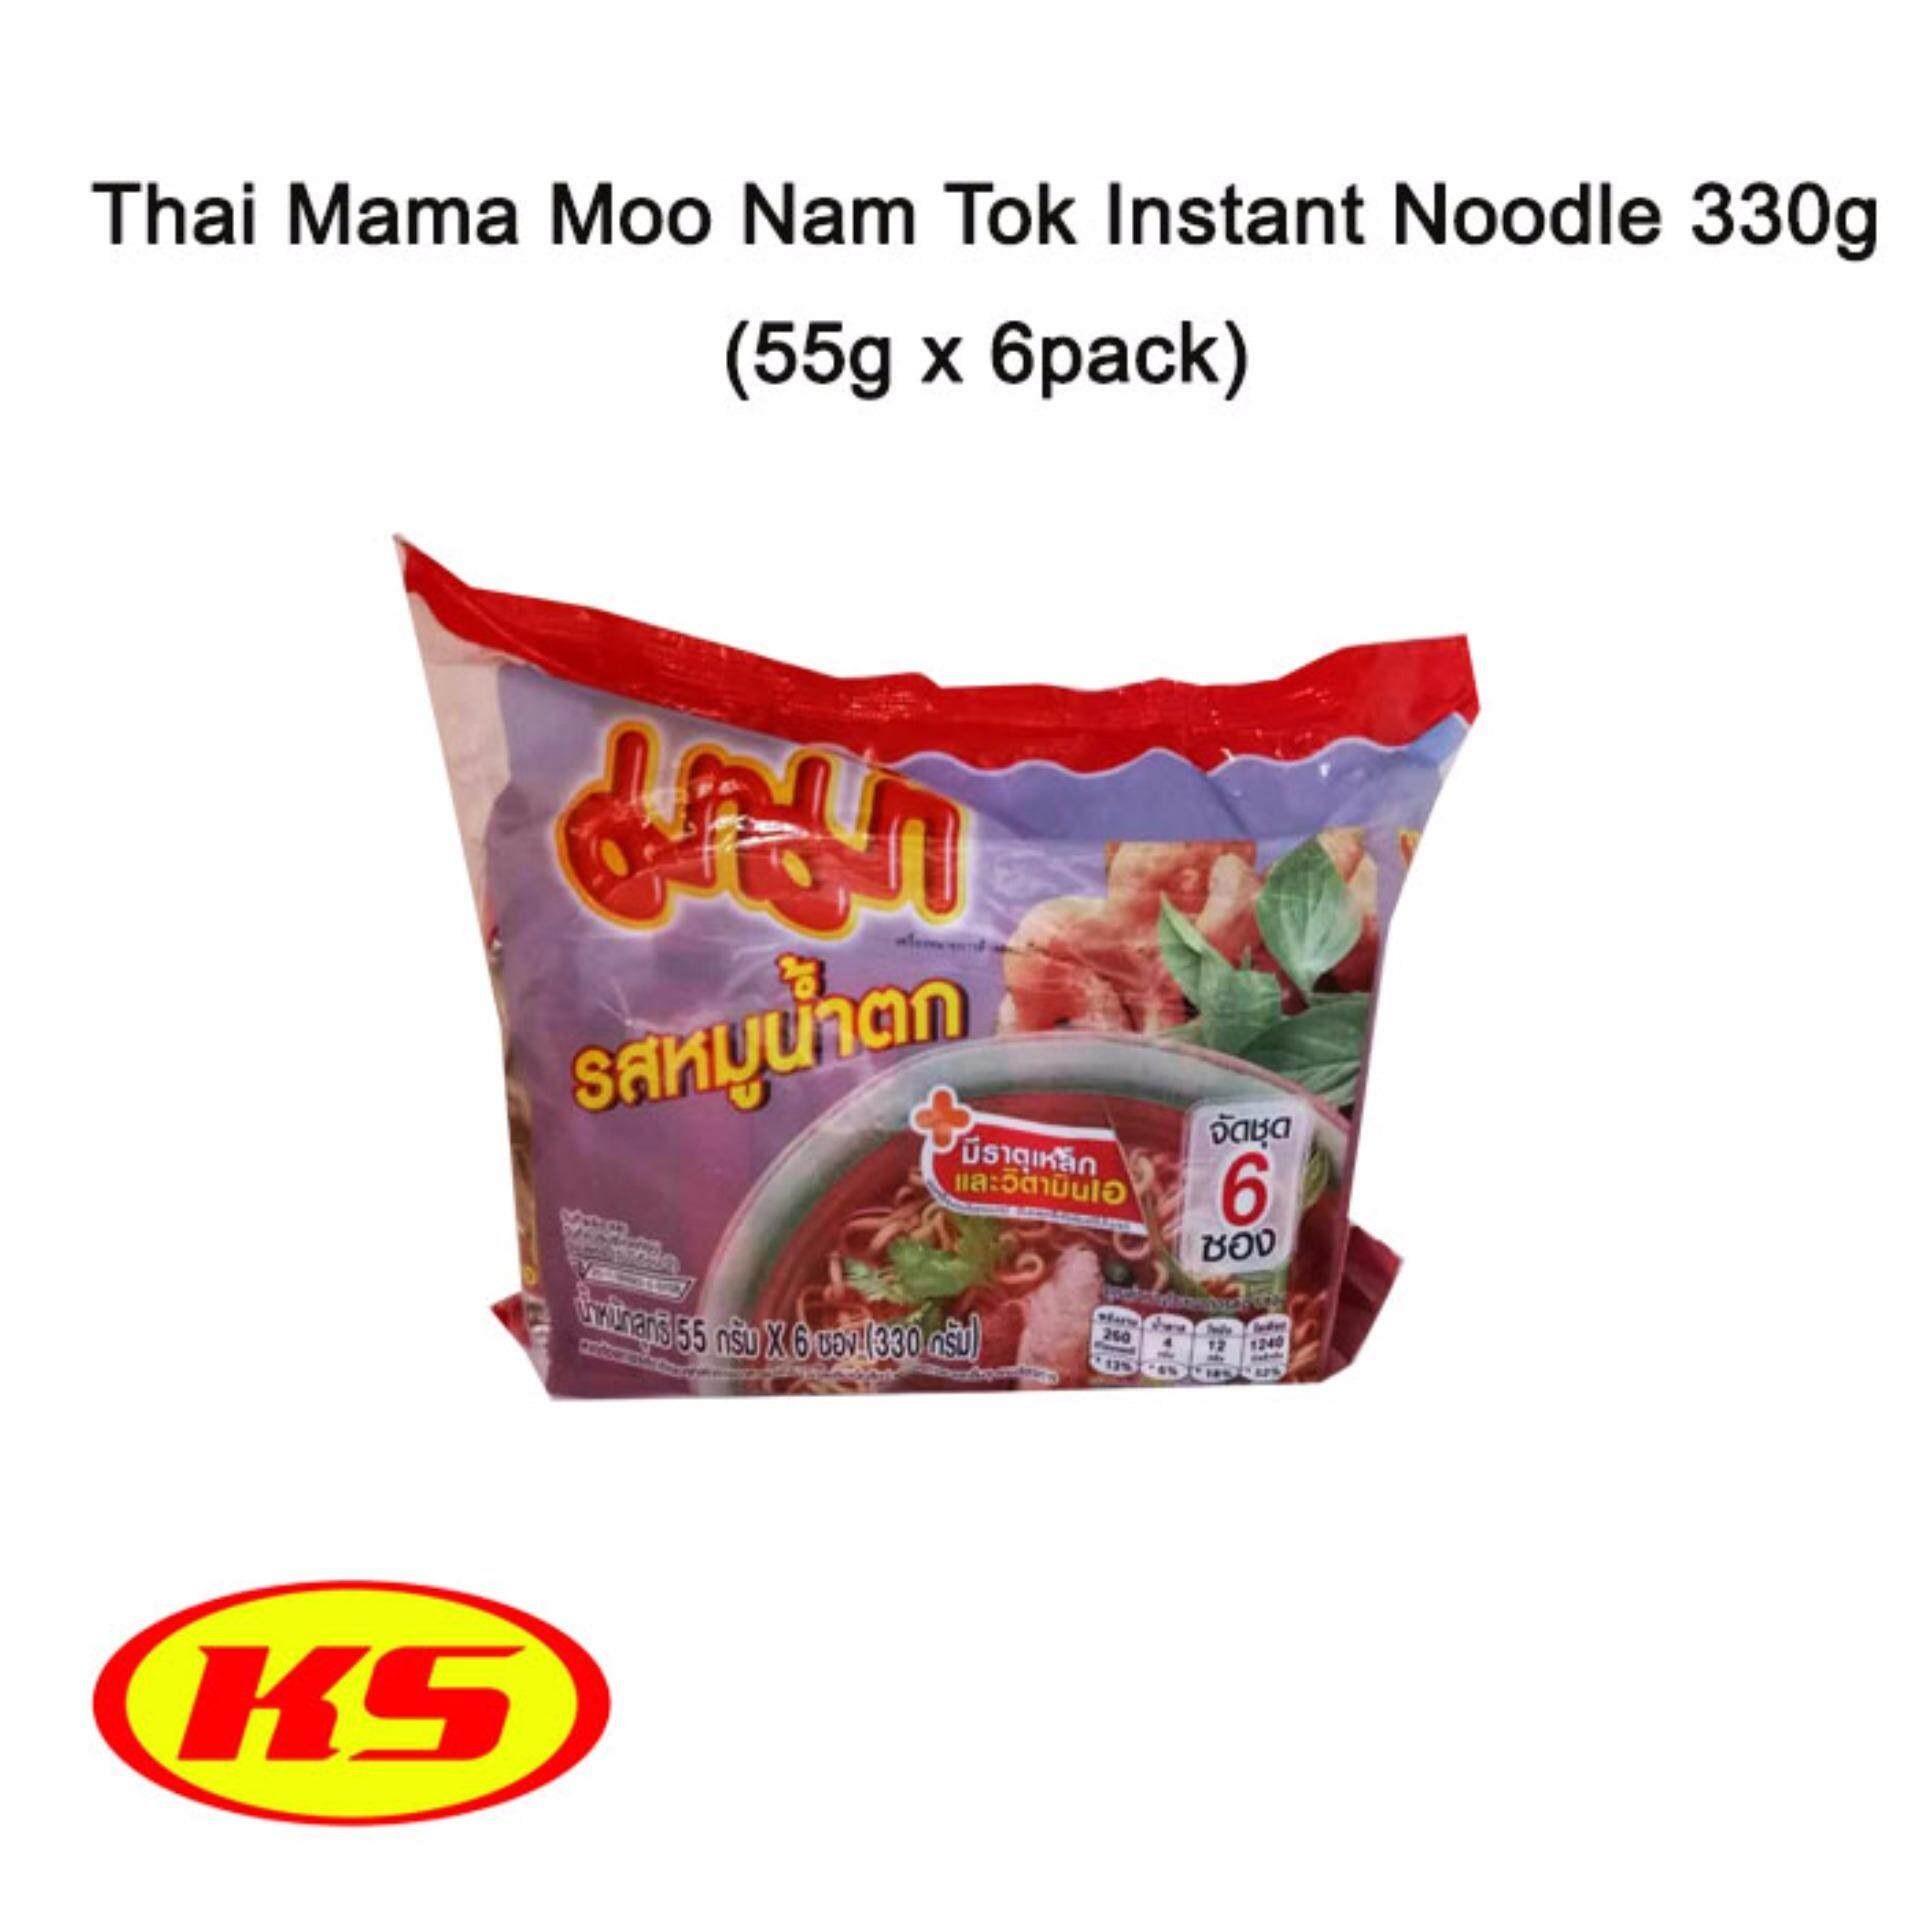 Thailand Mama Moo Nam Tok Instant Noodle (55g x 6pack) 330g